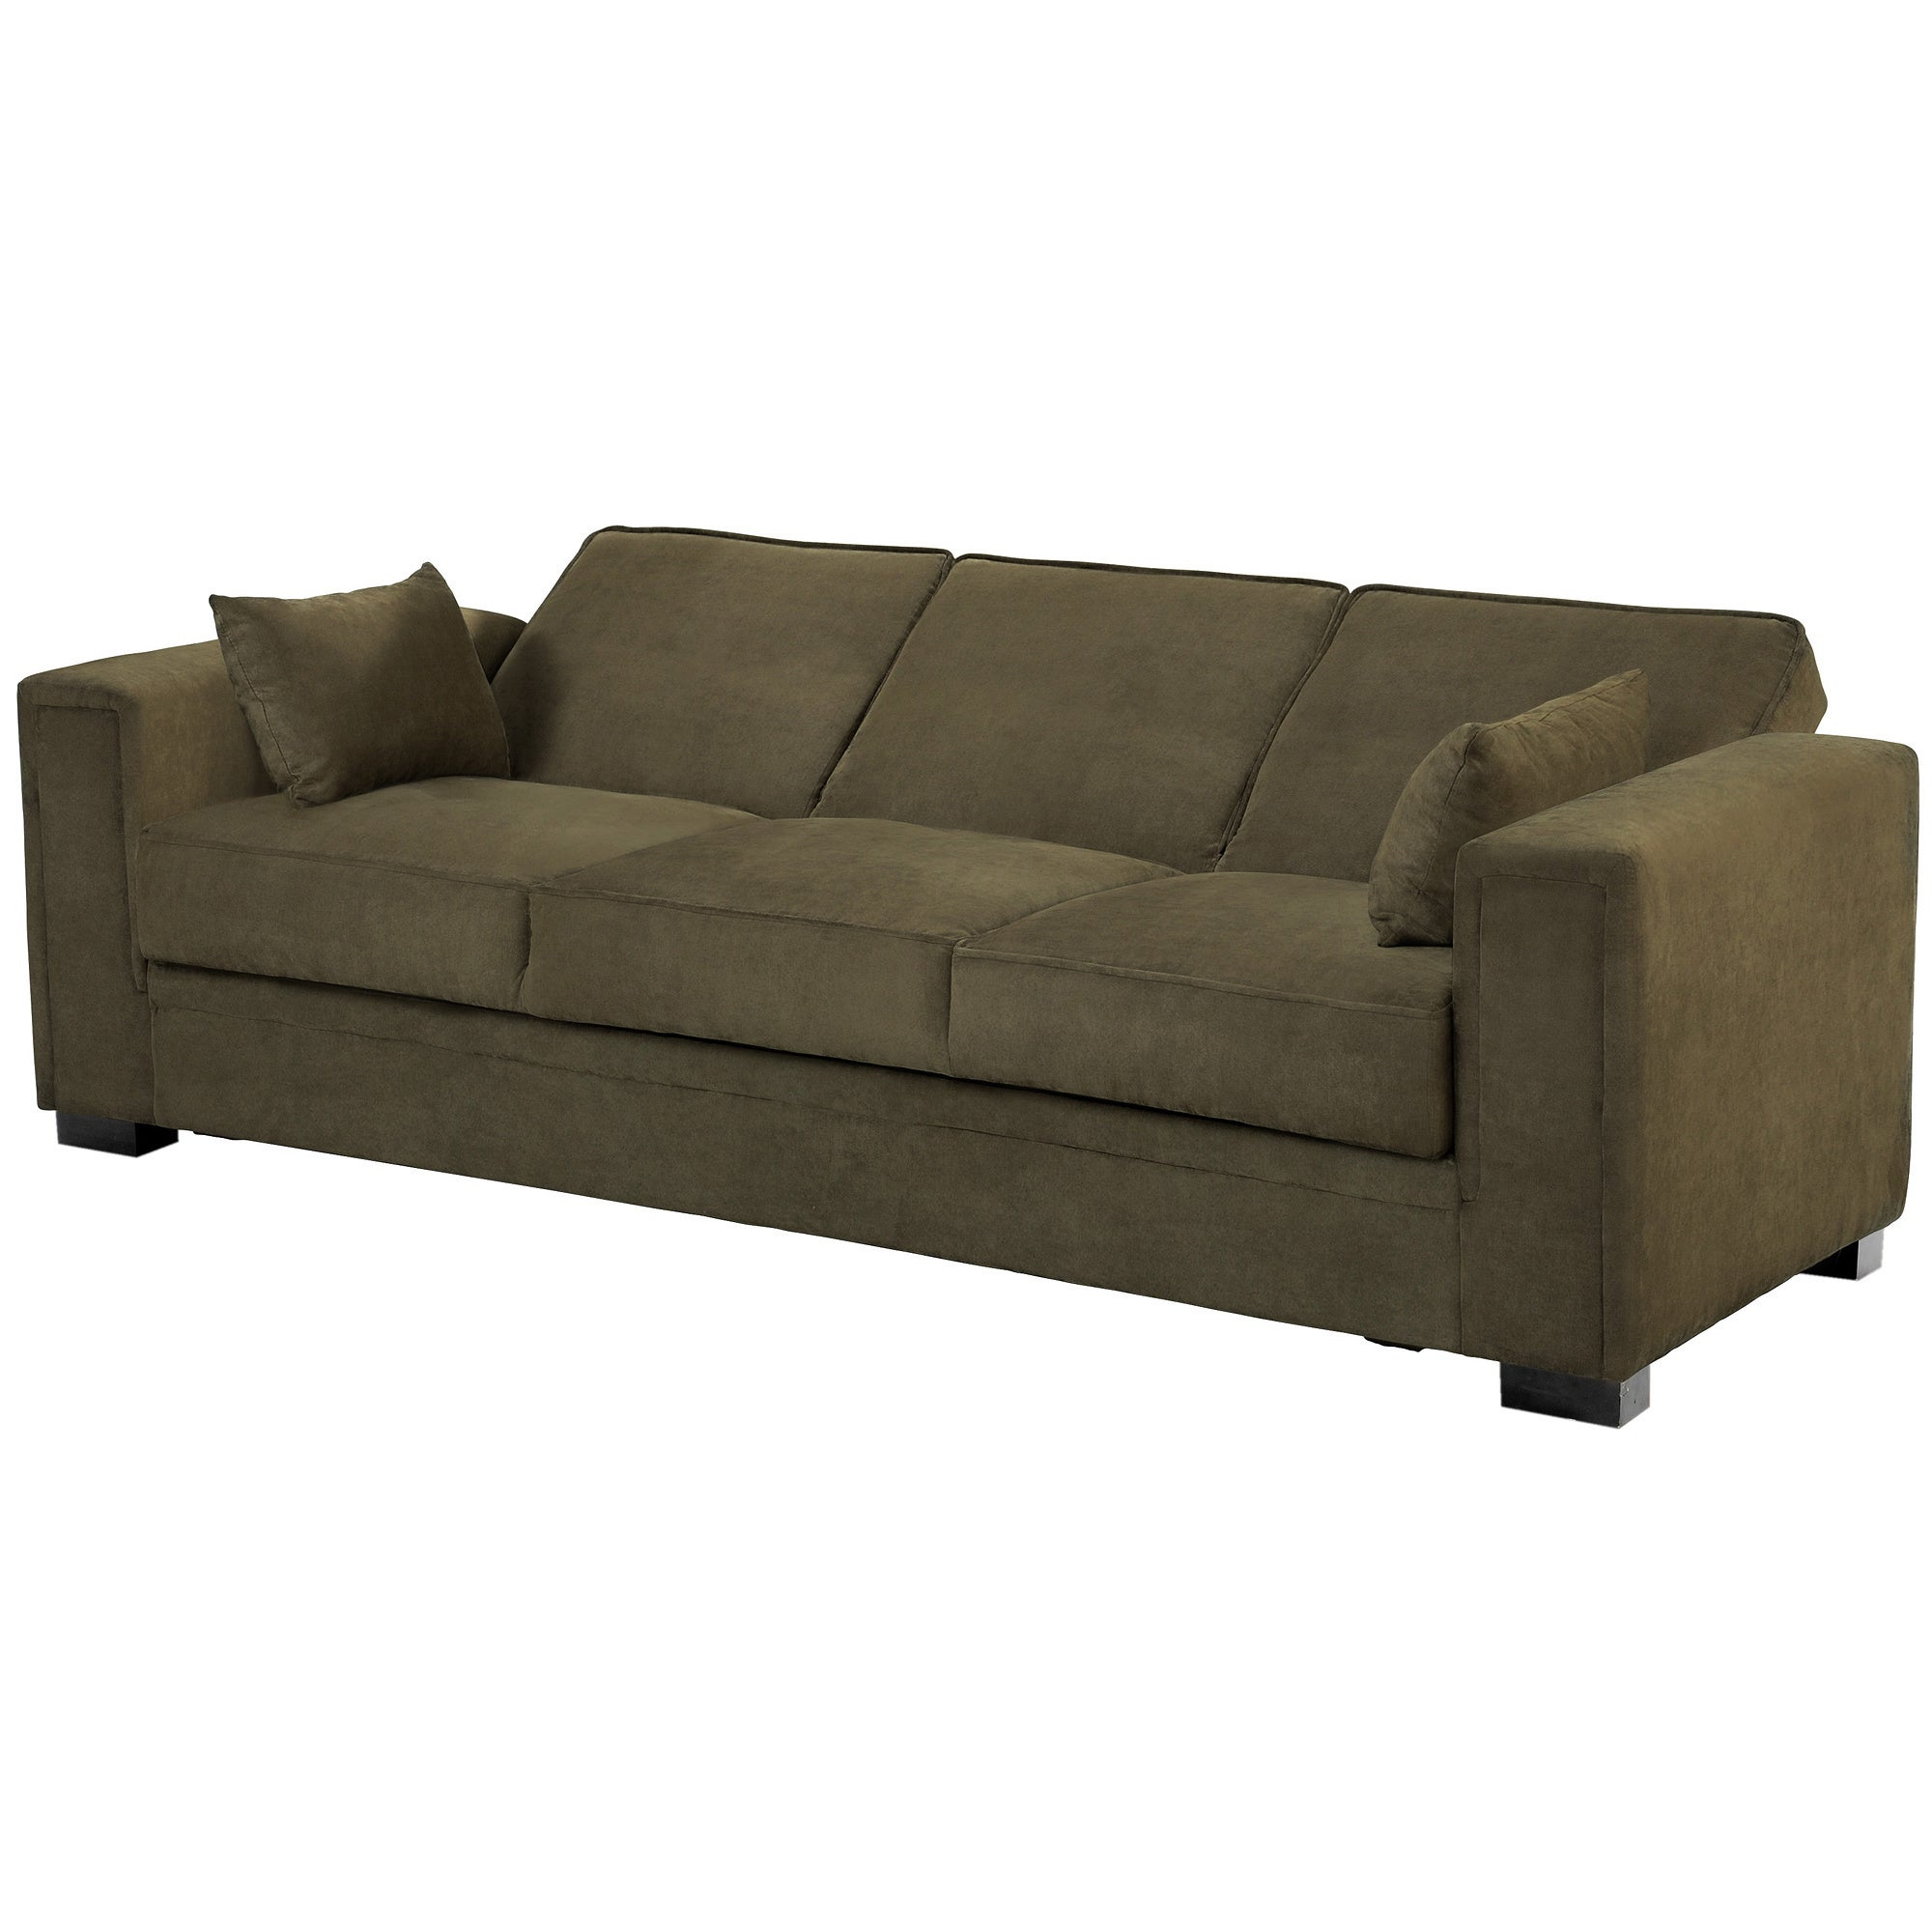 Shop serta sabrina pewter convertible sleeper sofa free shipping today overstock com 8869347